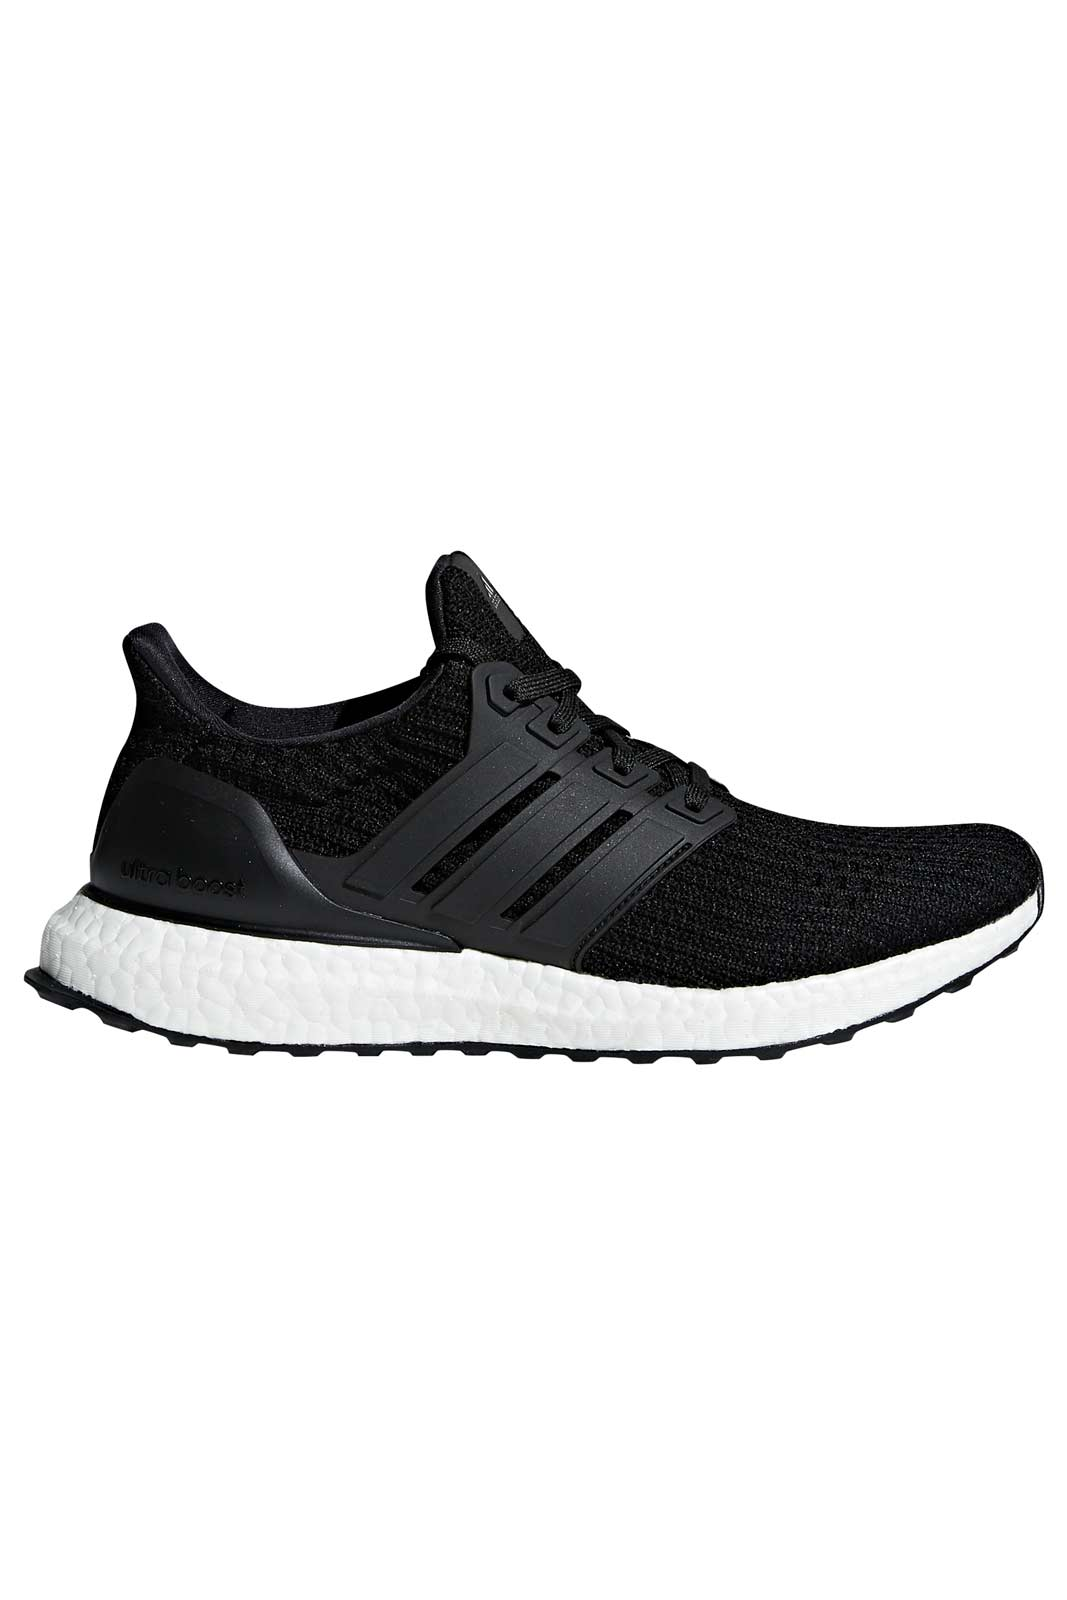 ADIDAS Ultra Boost 4.0 - Core Black - Women's image 5 - The Sports Edit